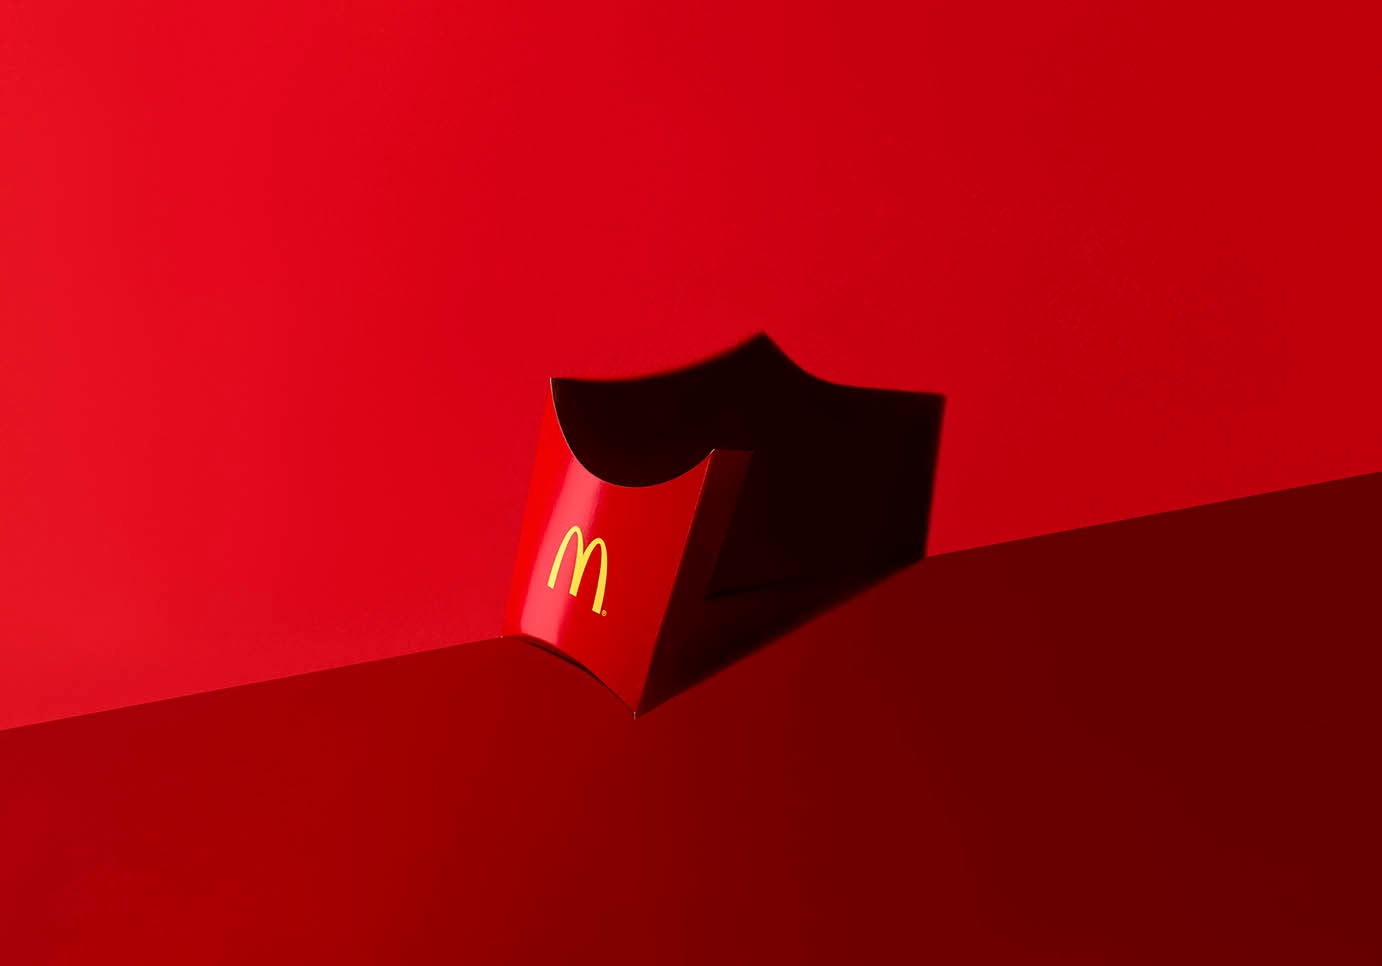 mcdonalds box on red background